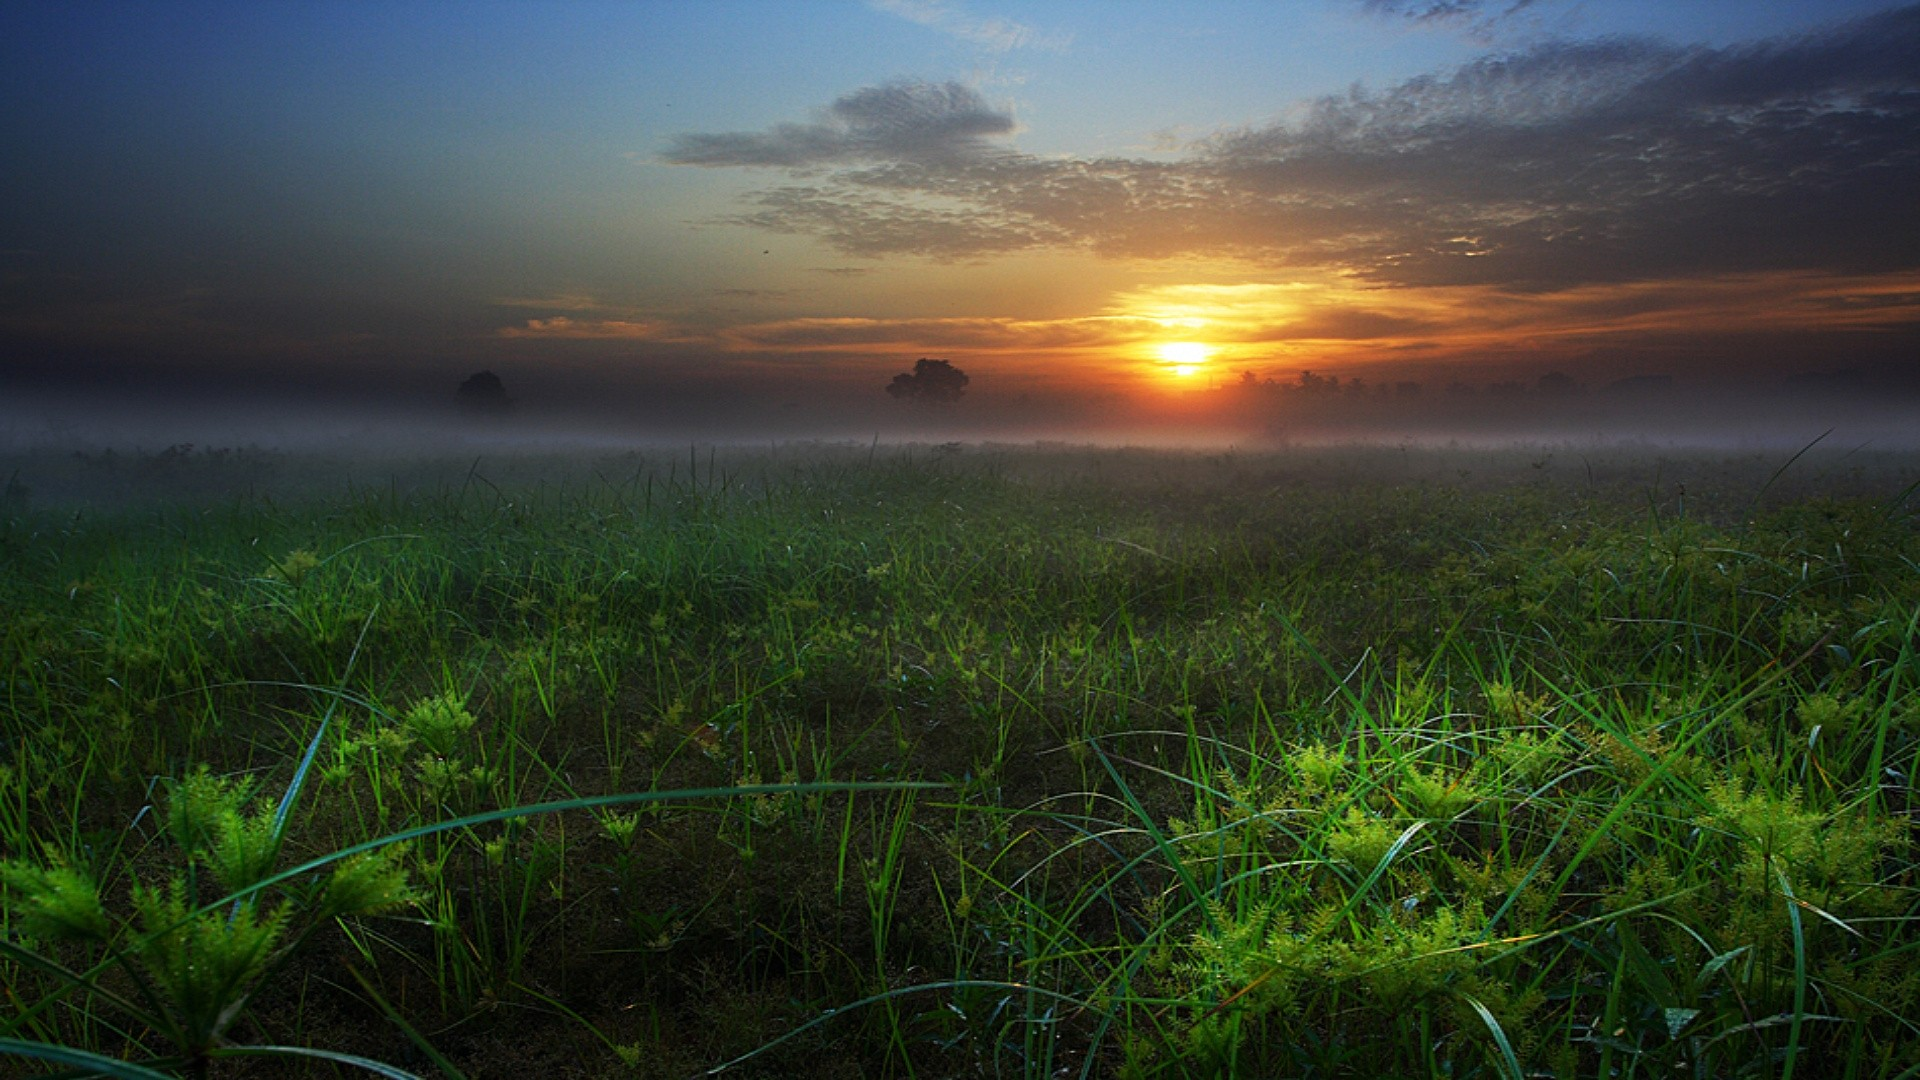 Download Sunset Landscapes Nature Fields Skyscapes 1920x1080 Hd